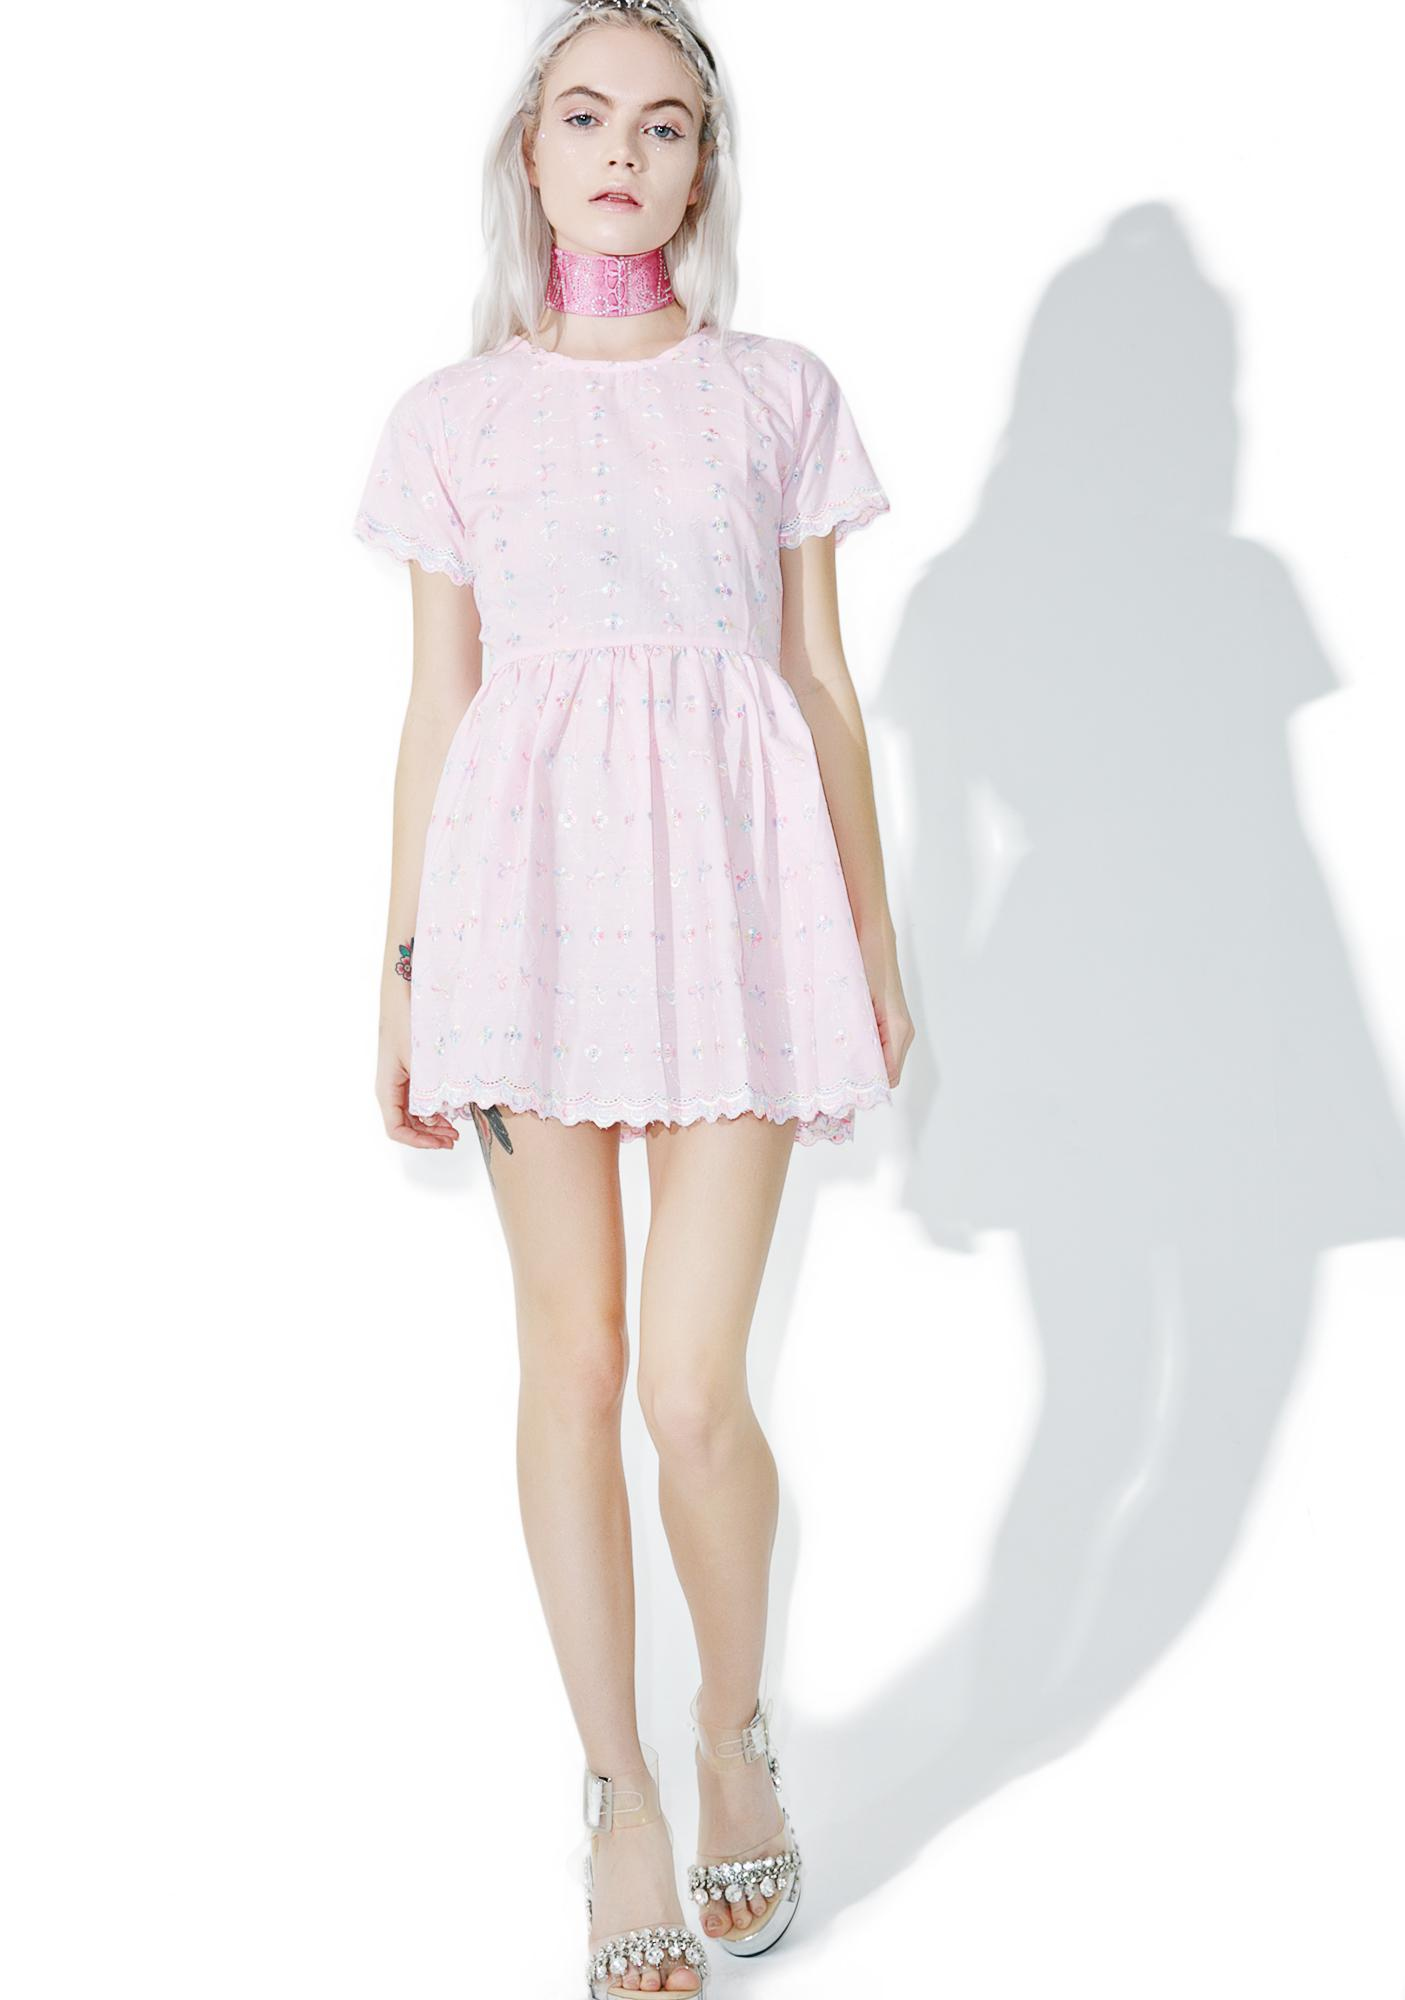 Faerie Queen Babydoll Dress